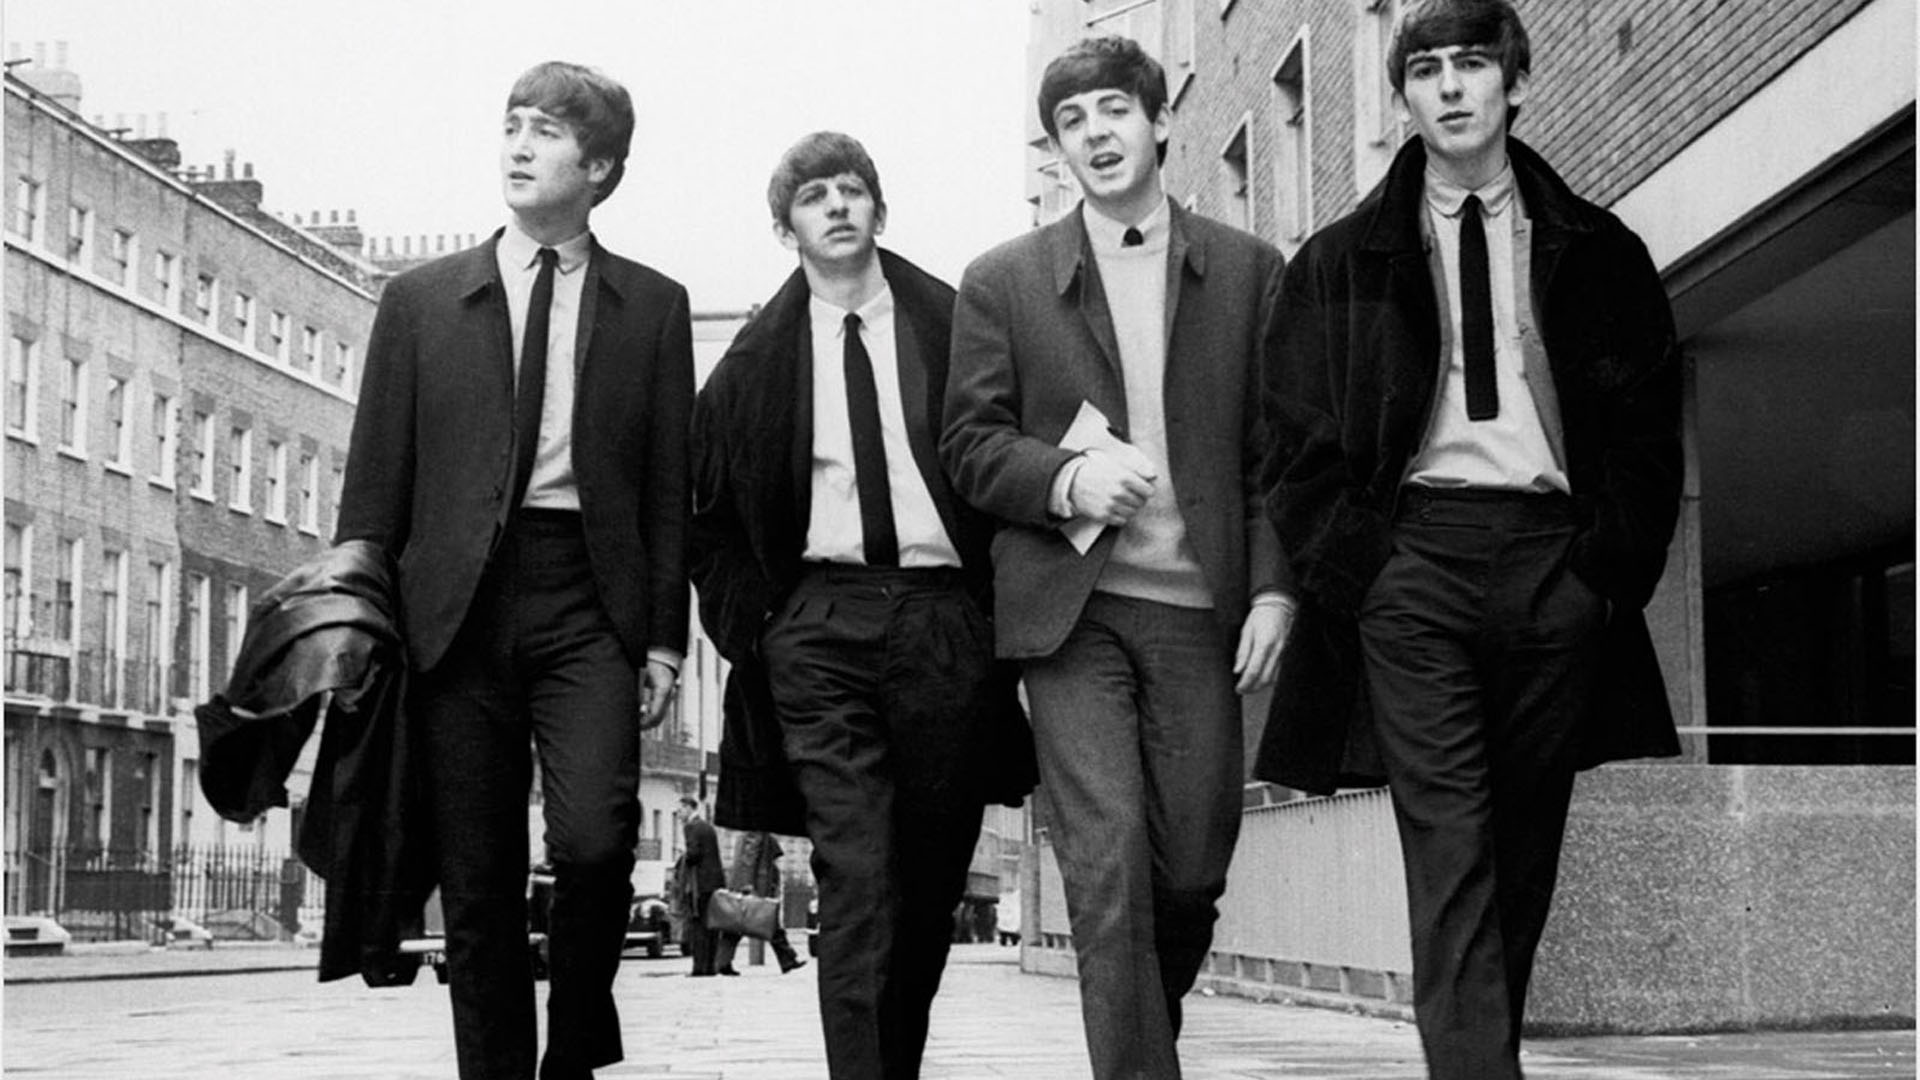 But when the other Beatles heard of John's plans to release a Beatle track under his own band's name the single was pulled.